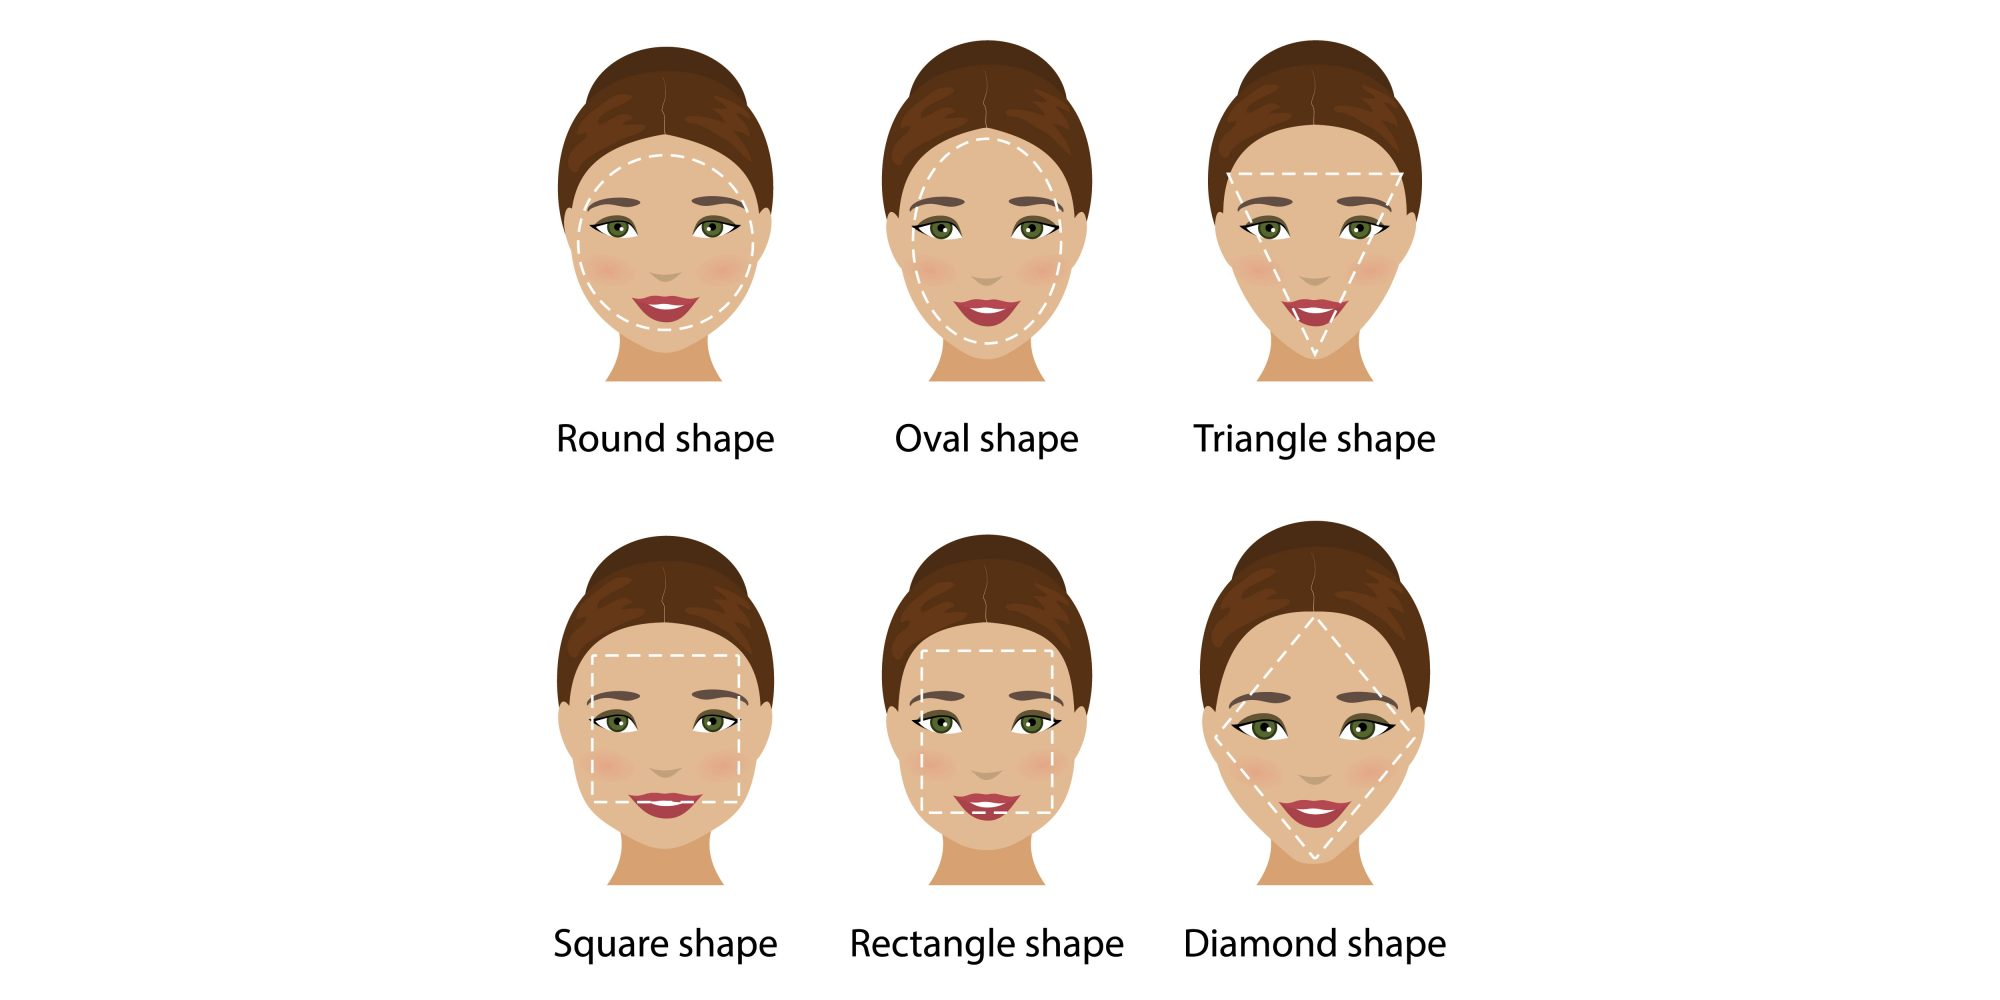 How to determine the shape of the face 19